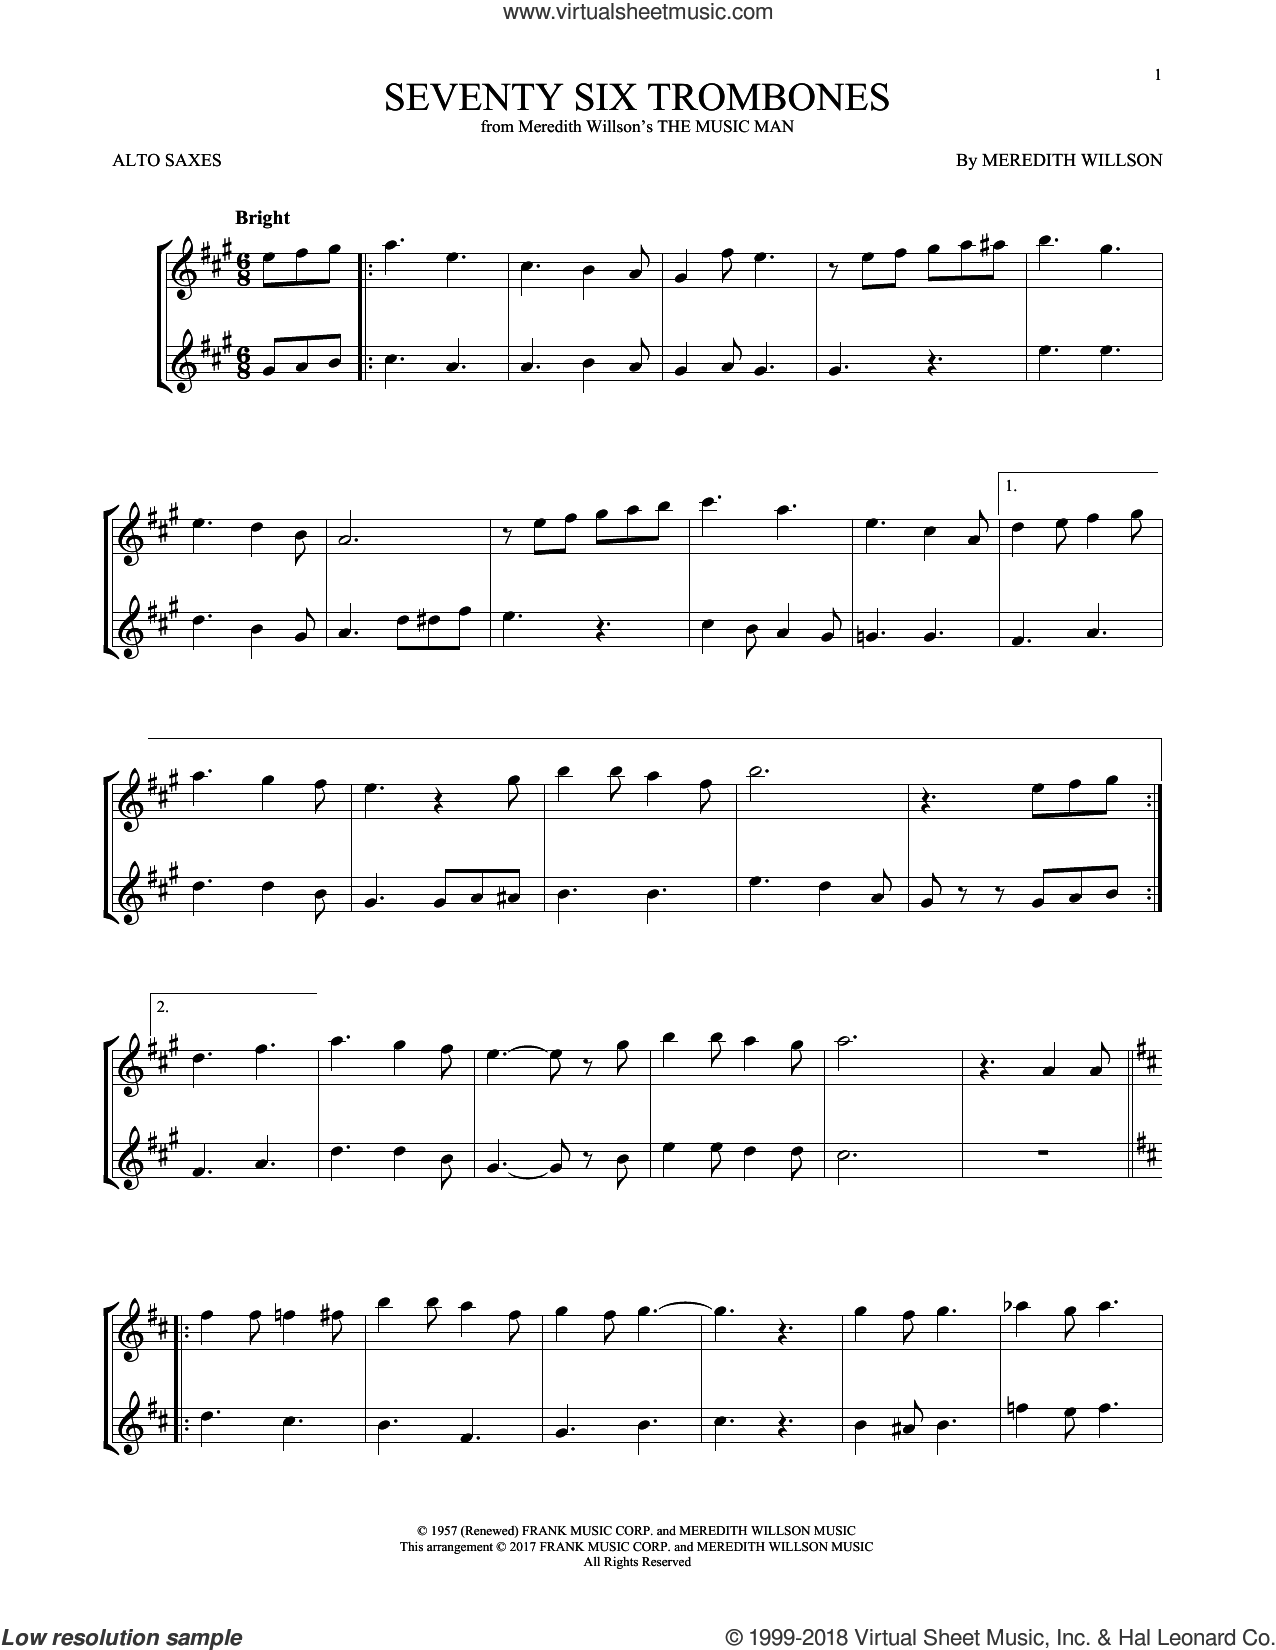 Seventy Six Trombones sheet music for two alto saxophones (duets) by Meredith Willson, intermediate skill level